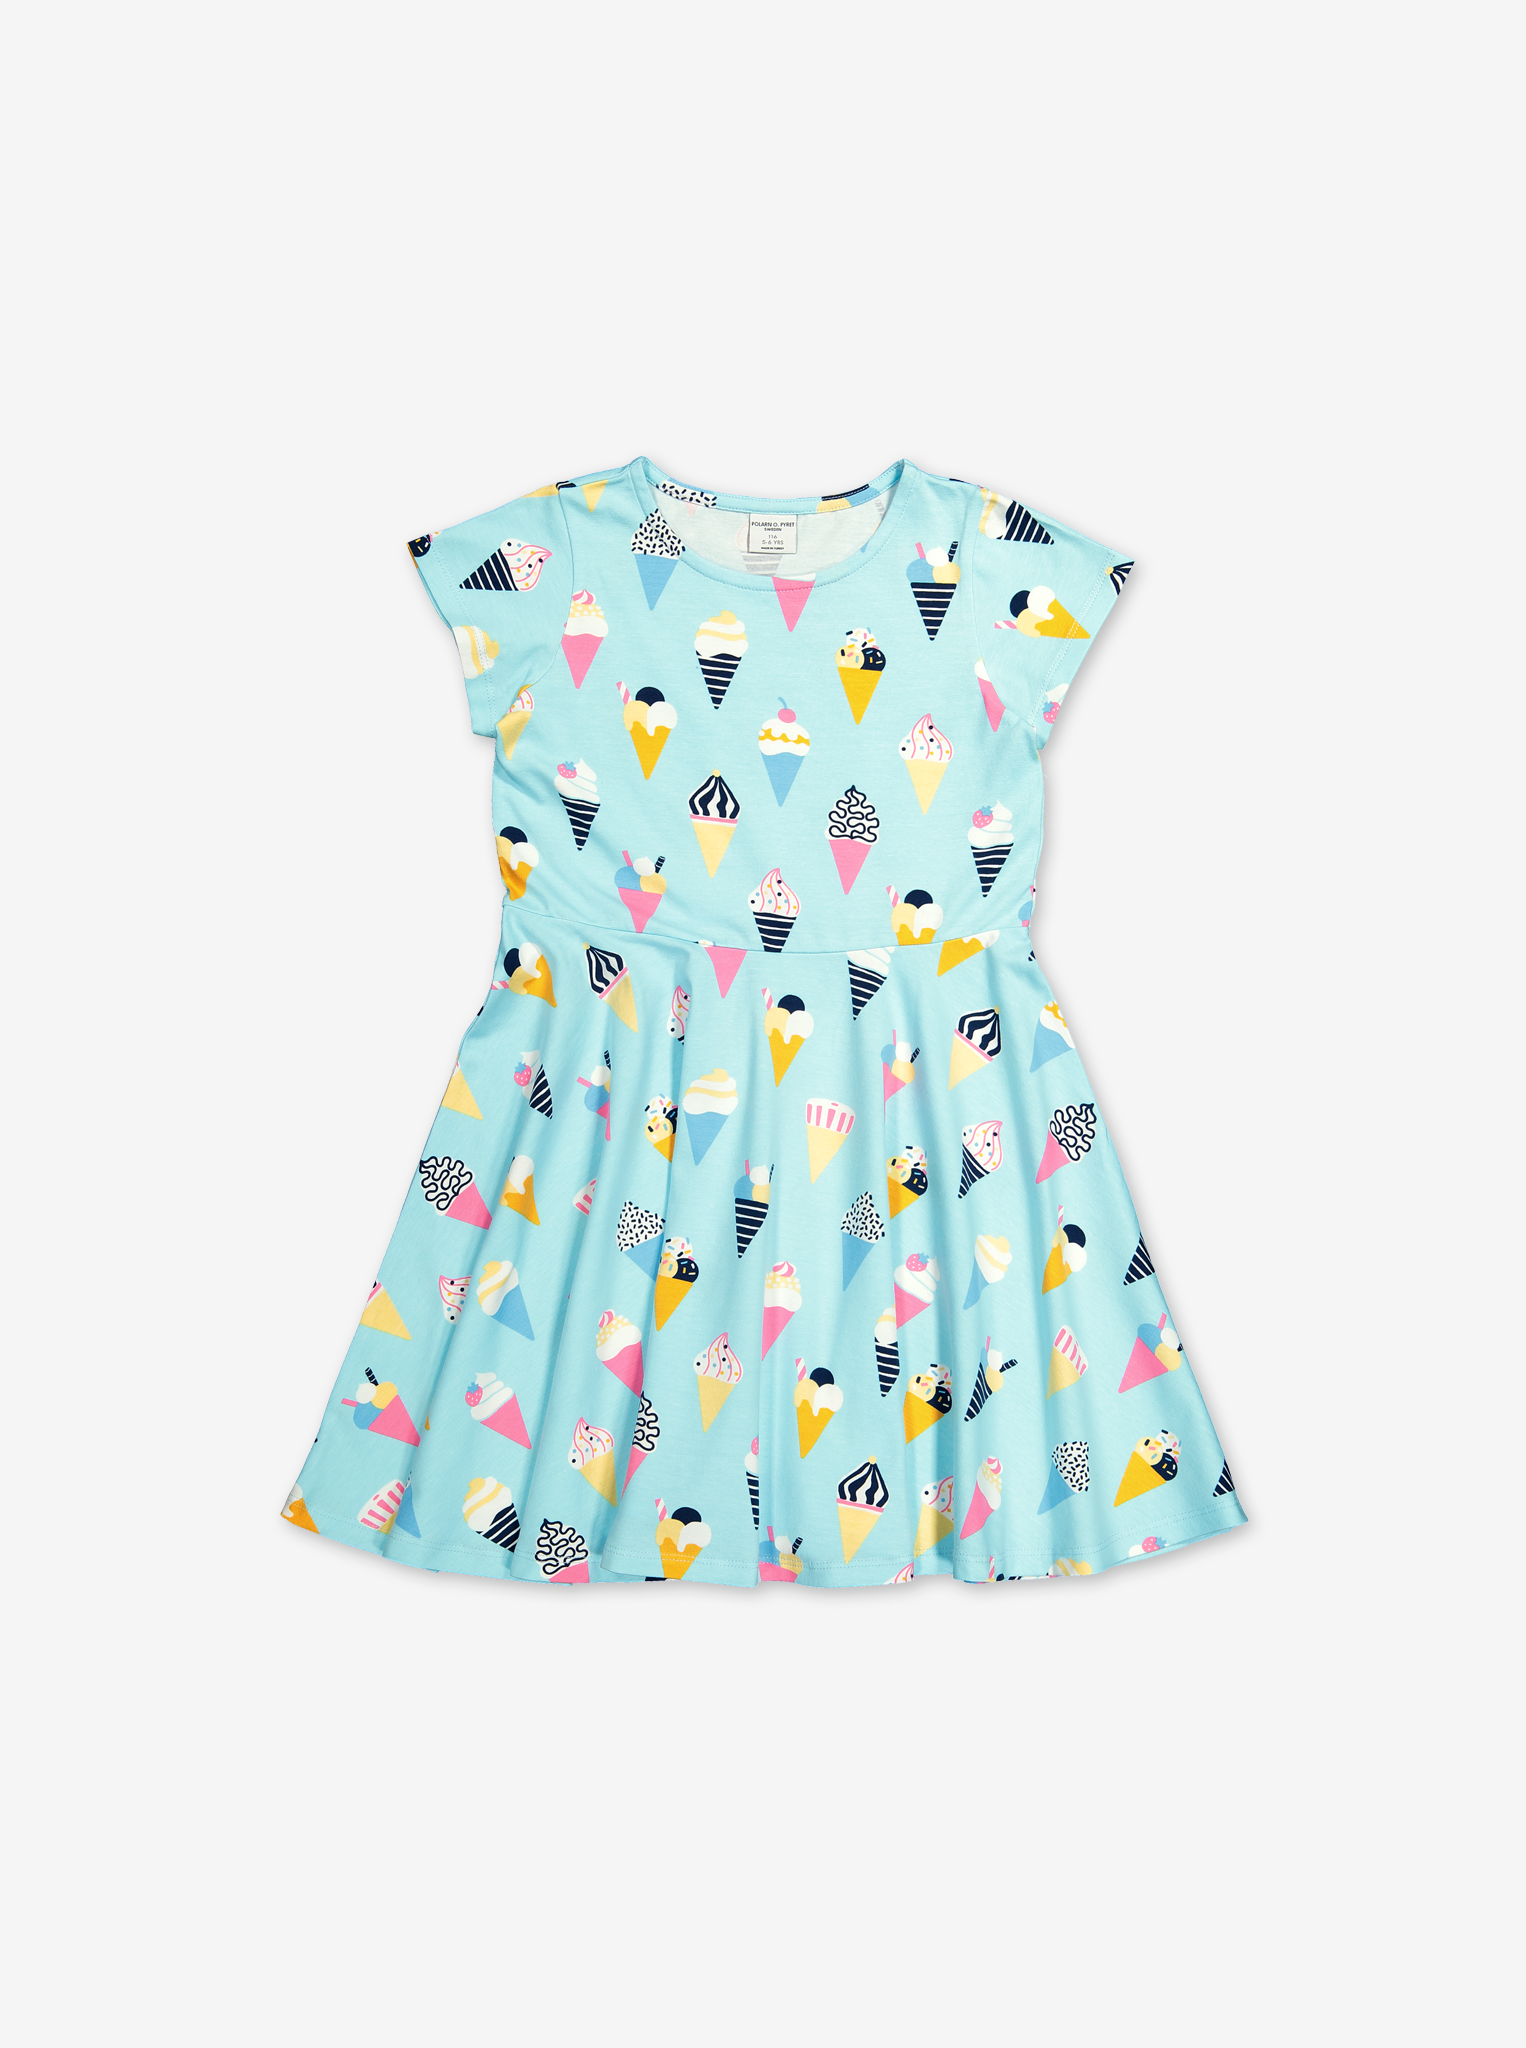 Twirl Ice Cream Dress-Girl-1-8y-Turquoise